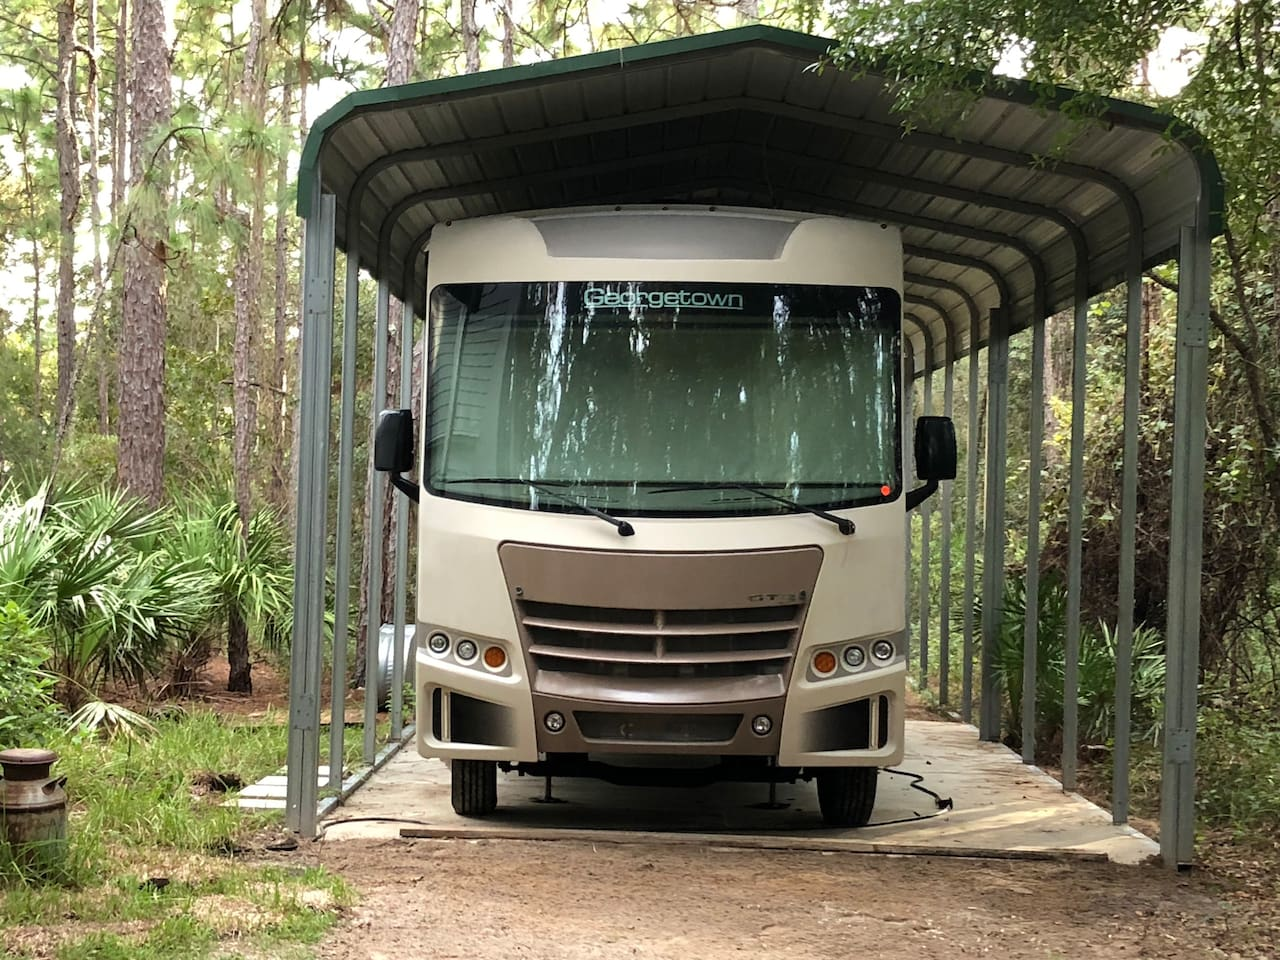 Our unique take on Airbnb,30'Georgetown motor home